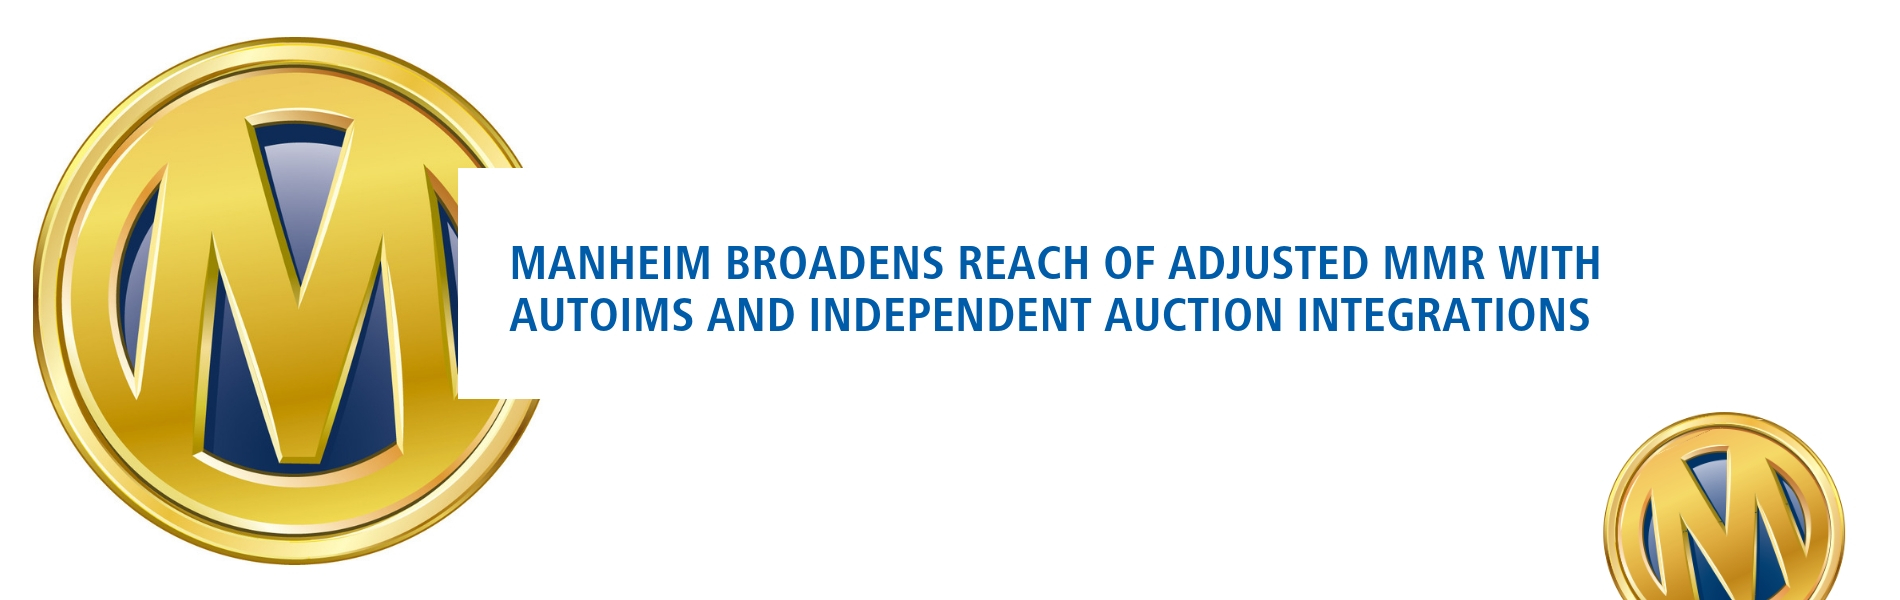 Manheim Broadens Reach of Adjusted MMR with AutoIMS and Independent Auction Integrations